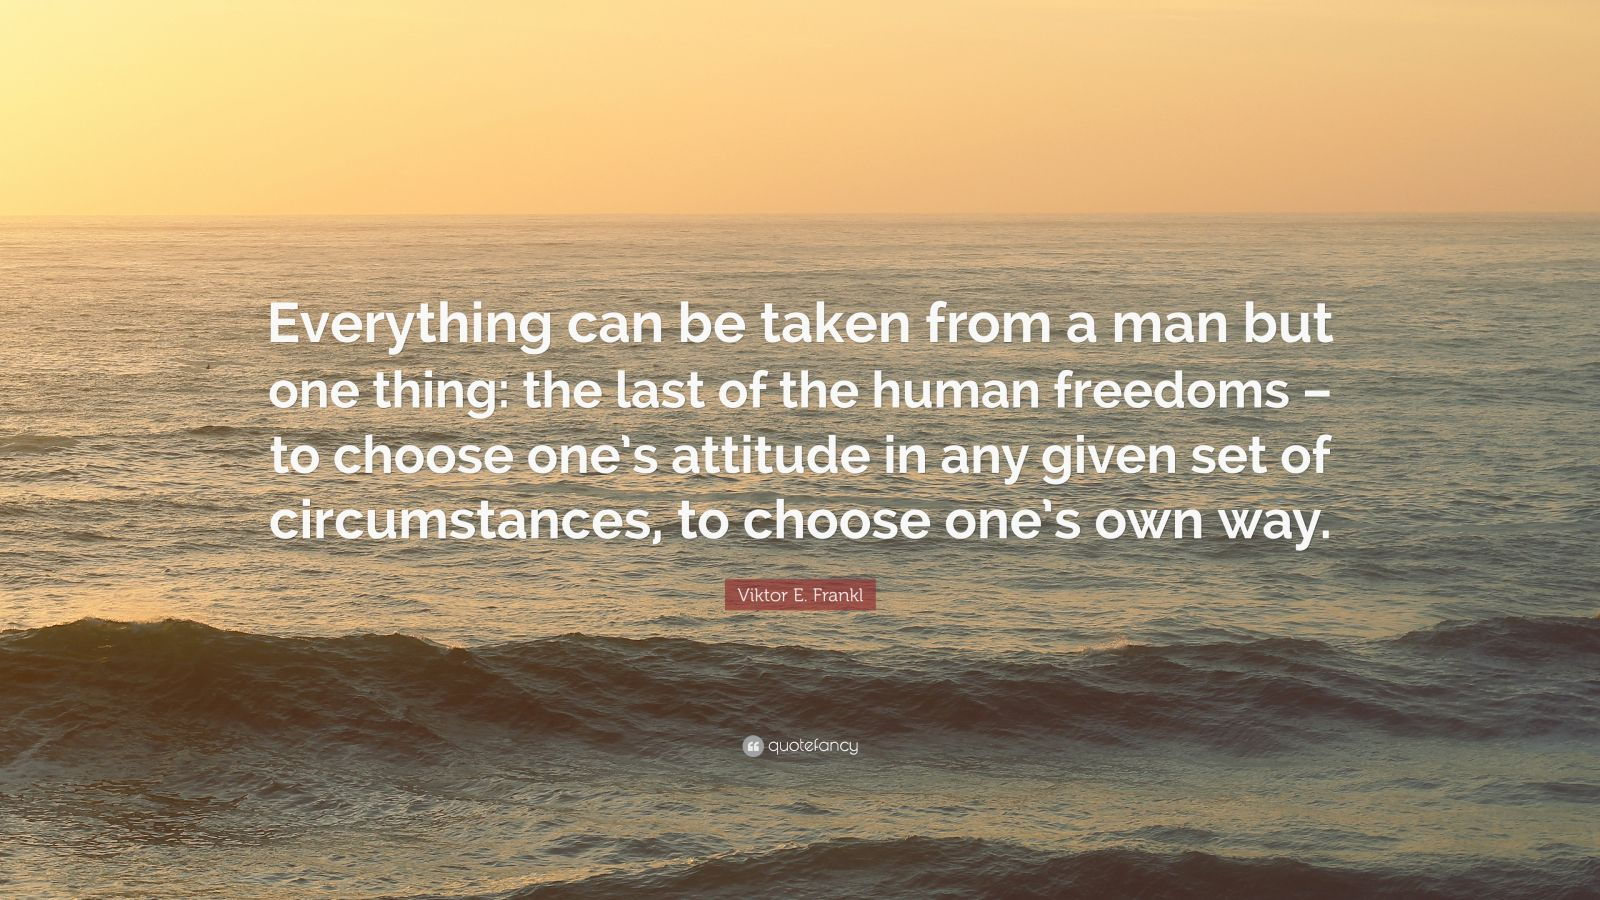 Motivational Quotes On Attitude Wallpapers Viktor E Frankl Quote Everything Can Be Taken From A